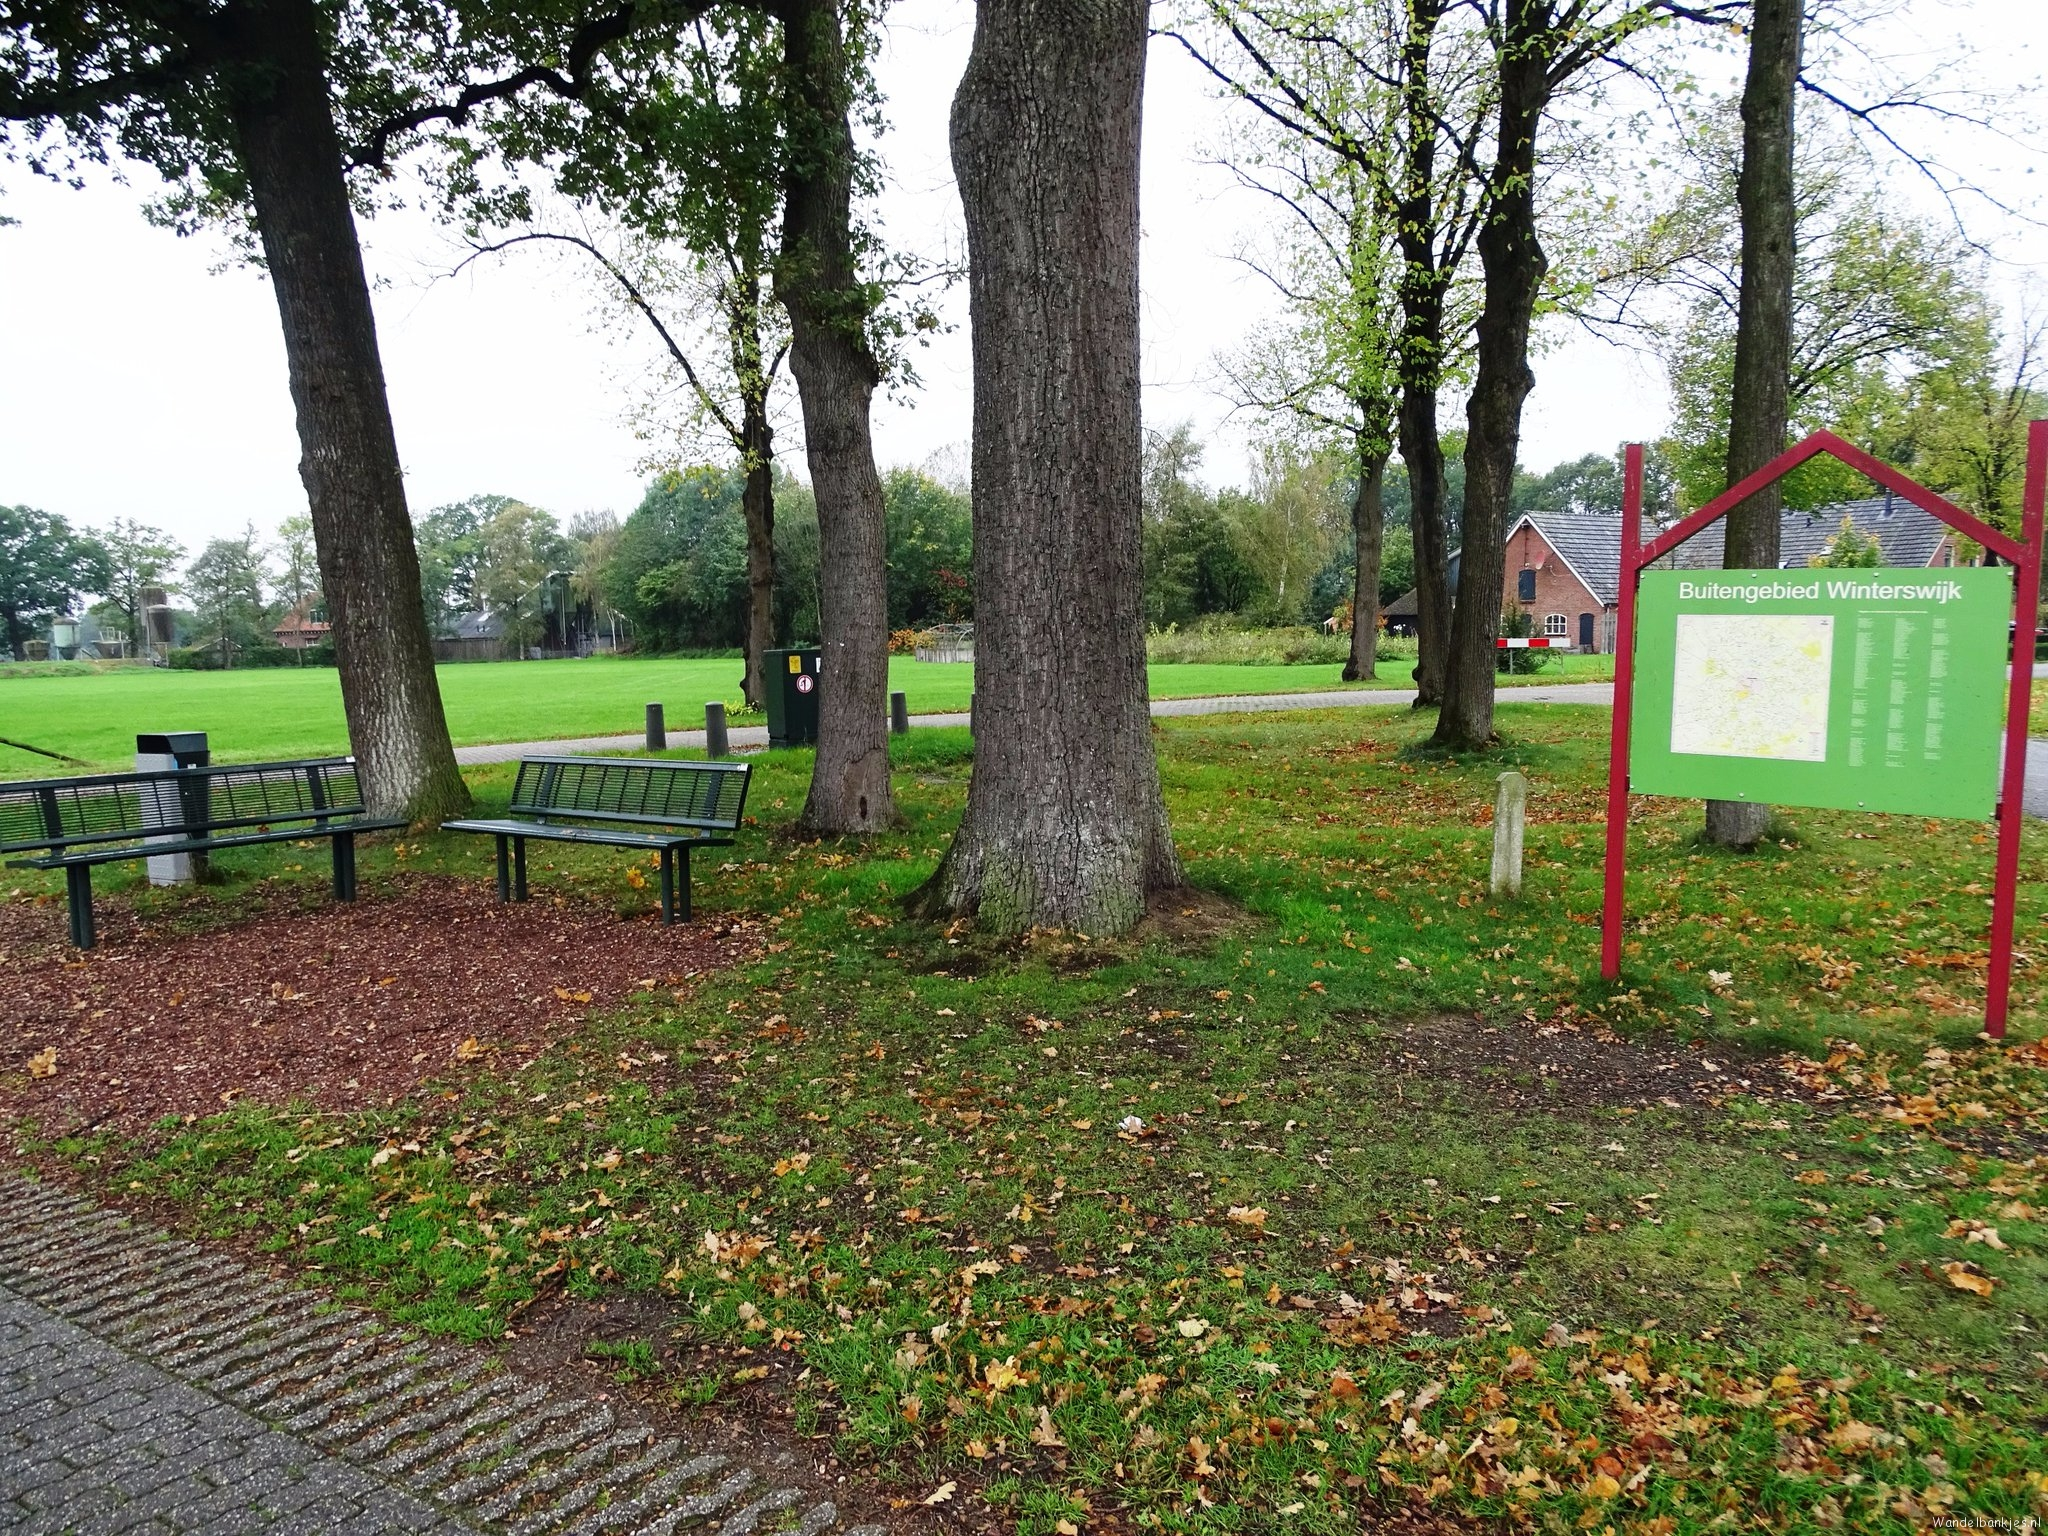 rt-jenjdevries-walking-benches-bench-along-the-plainspad-in-the-neighborhood-of-winterswijk-httpst-codptuu9yczi